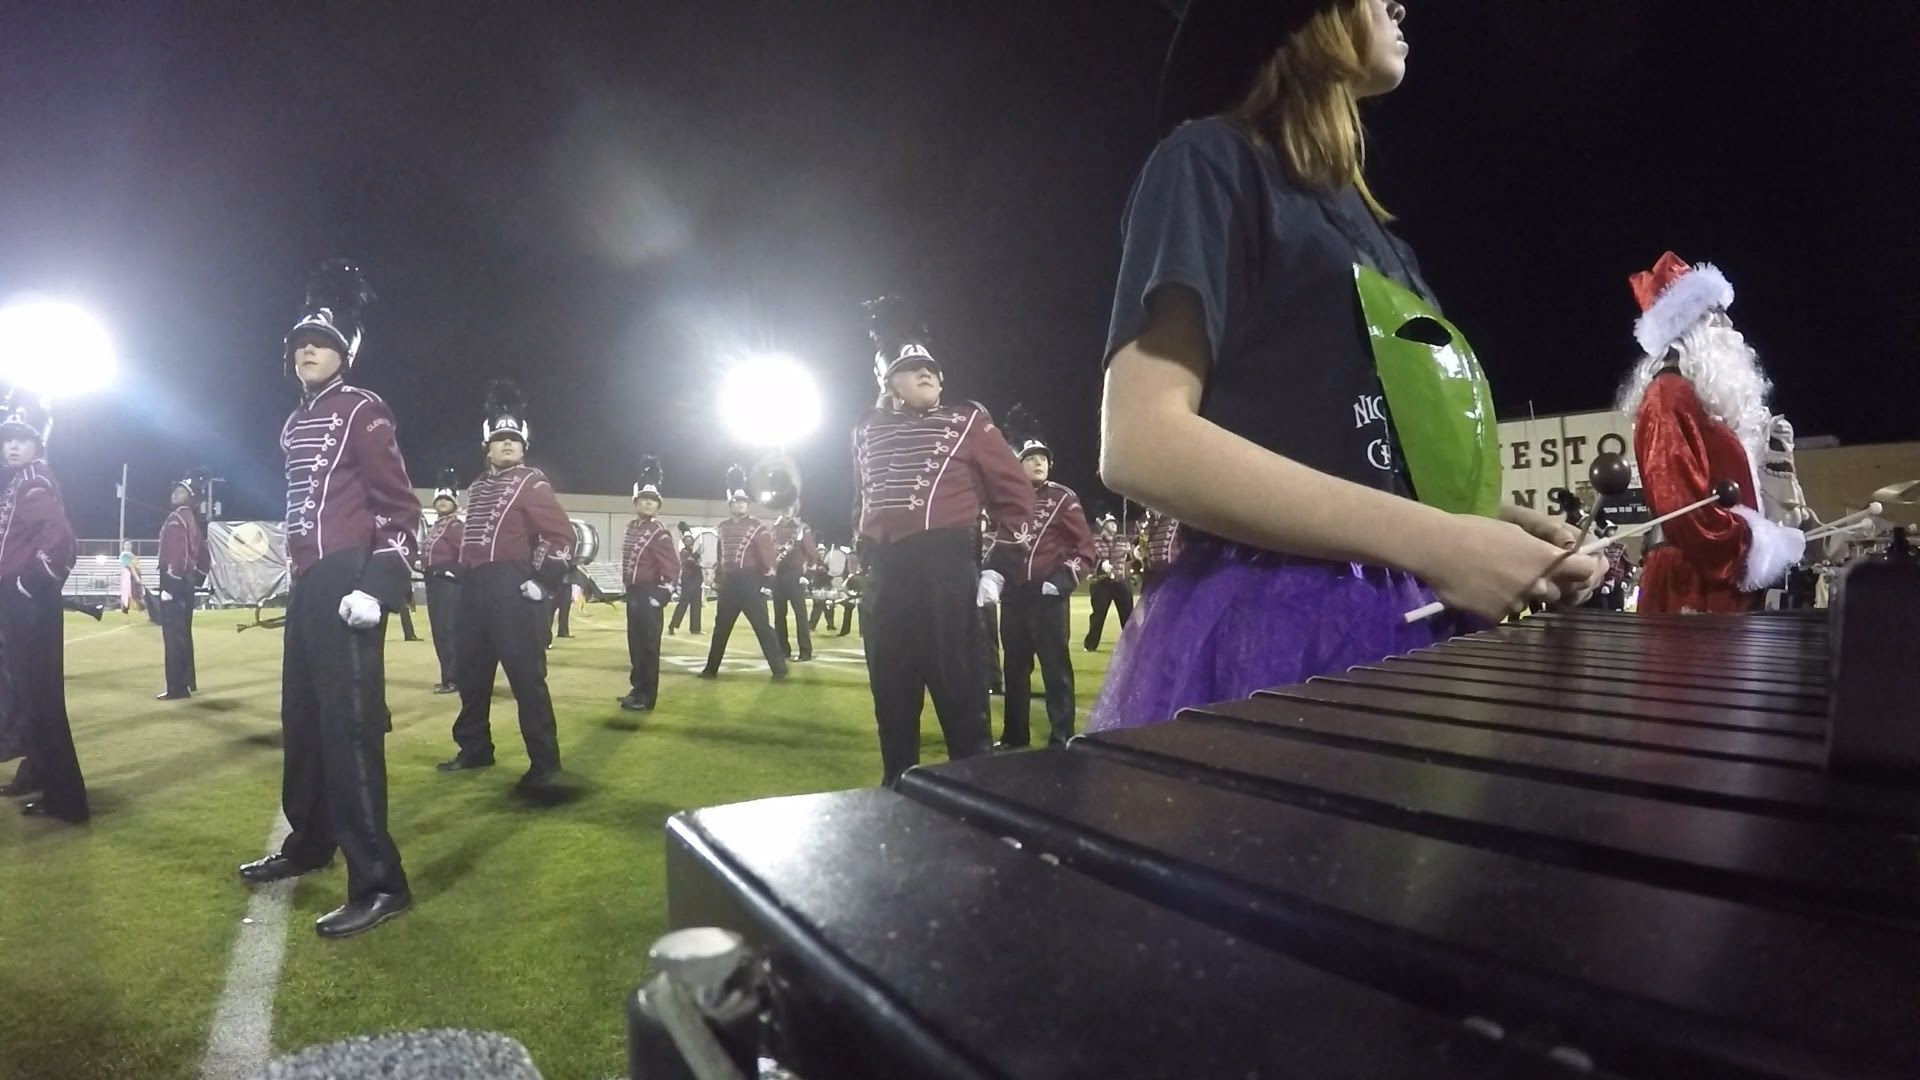 Clements High School - Battle of the Bands 2015